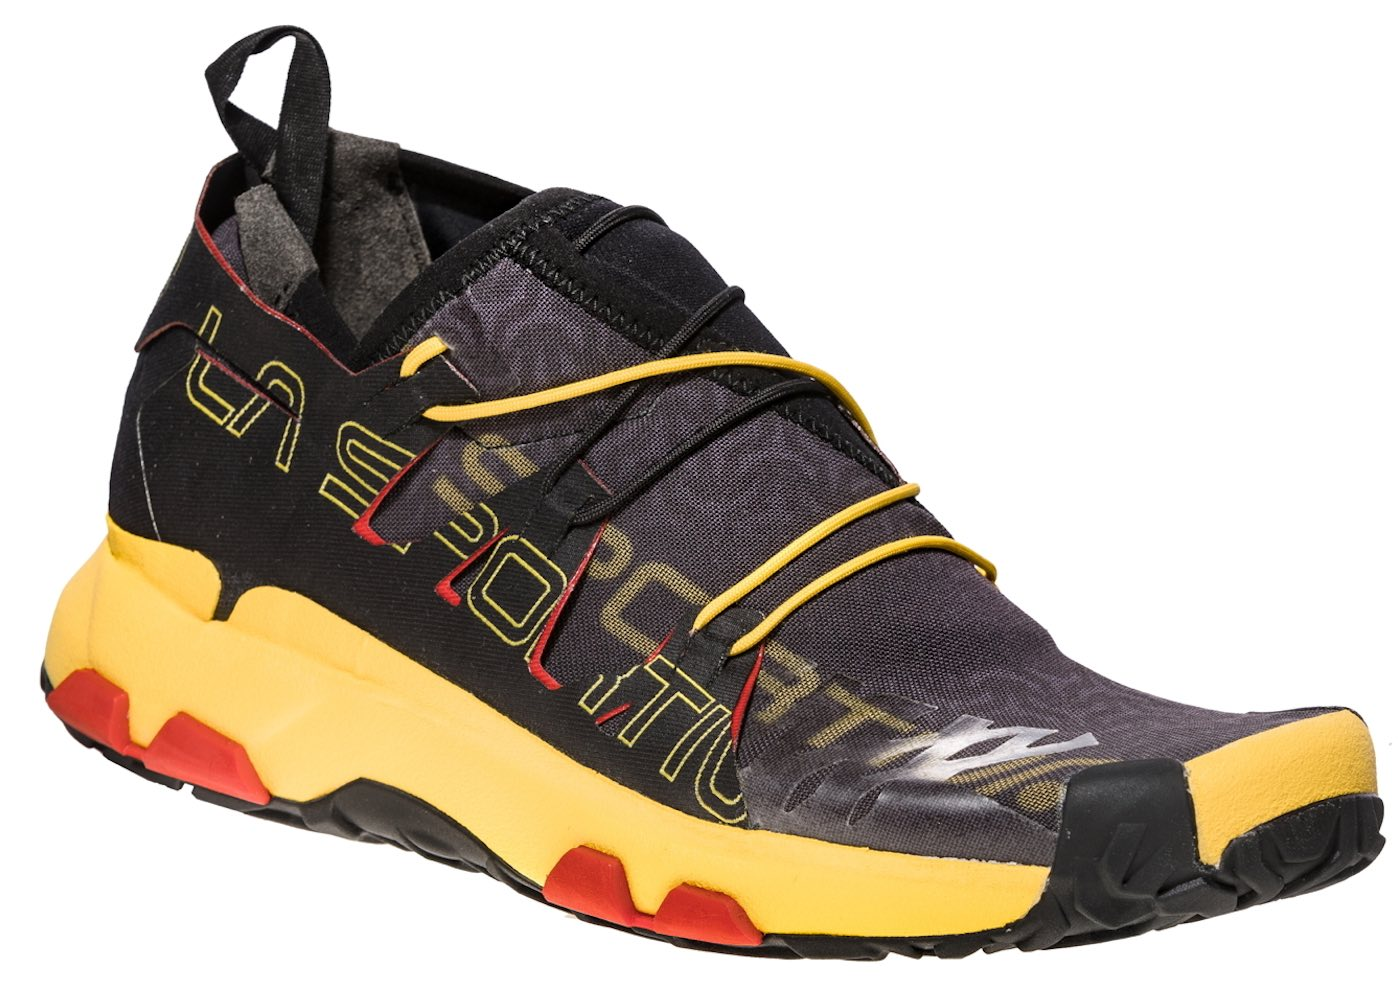 La Sportiva Unika : Black-Yellow